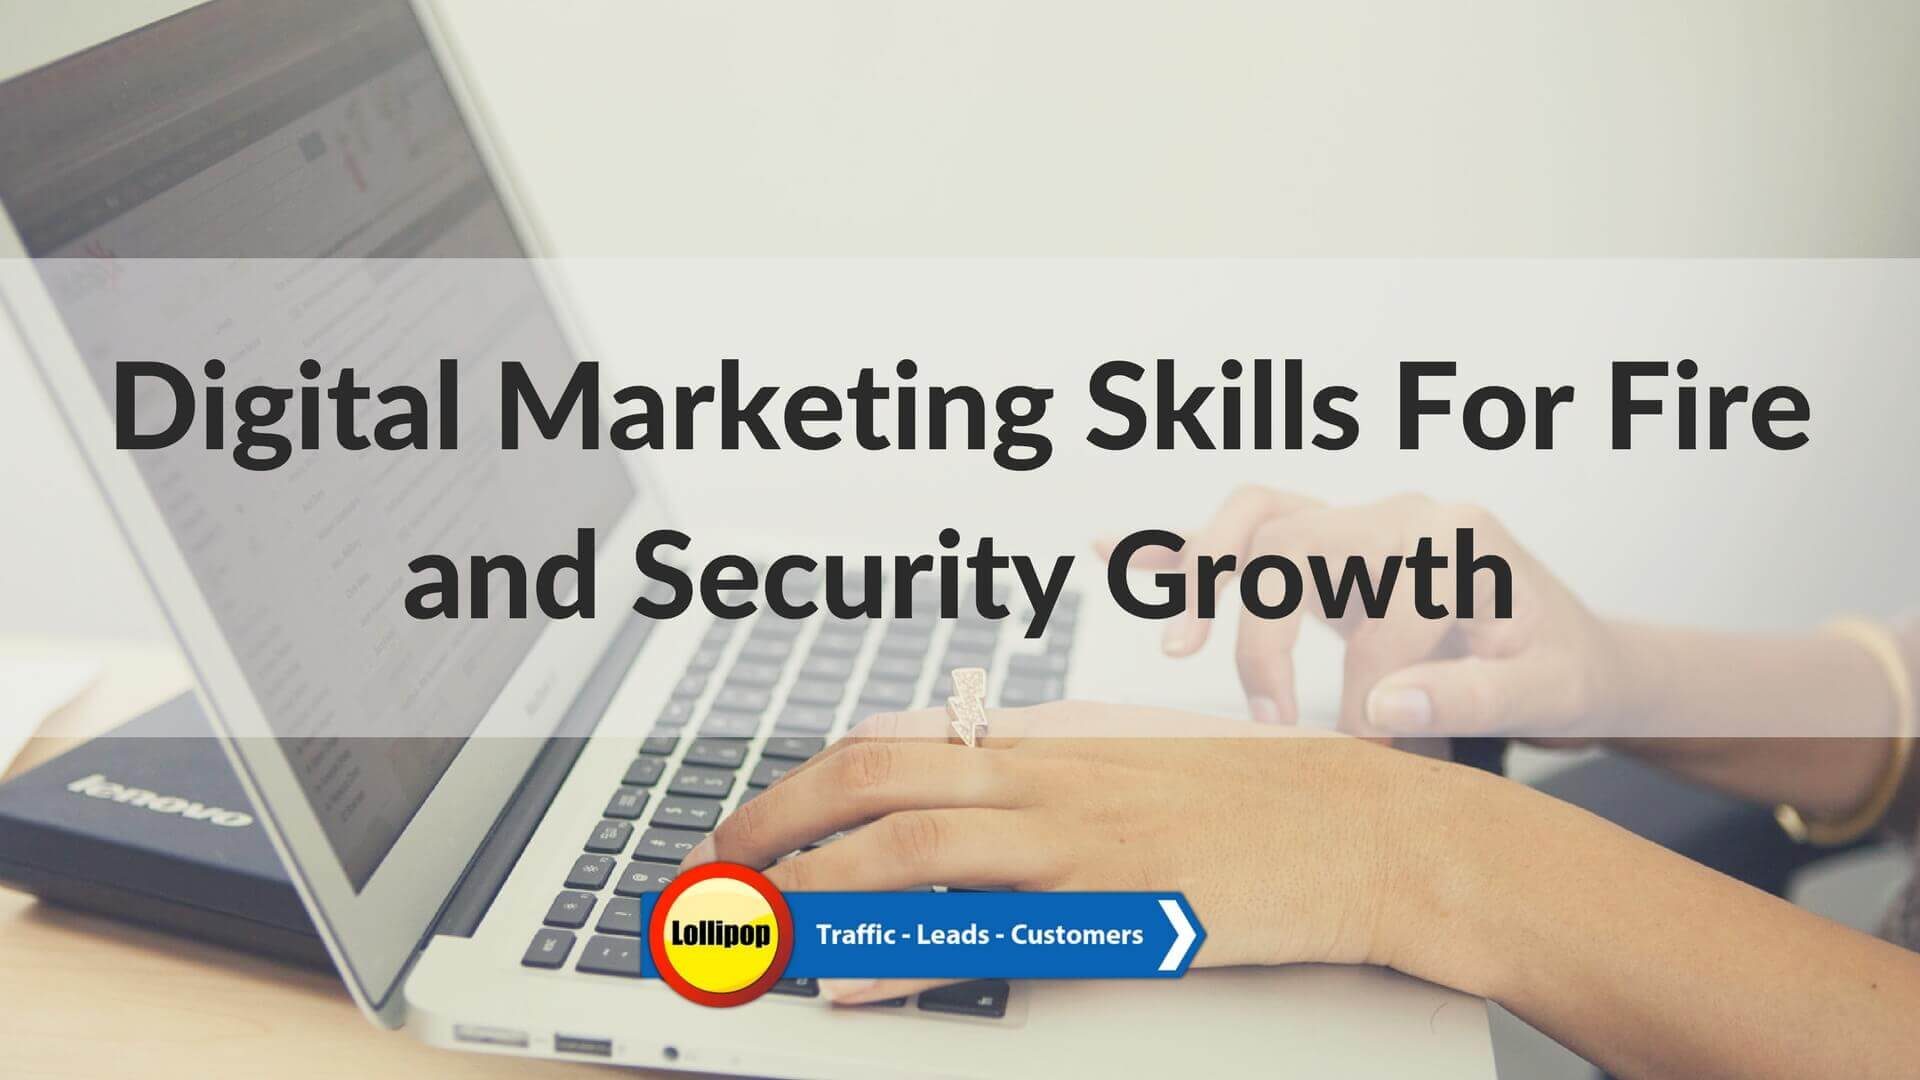 Digital-Marketing-Skills-For-Fire-and-Security-Growth